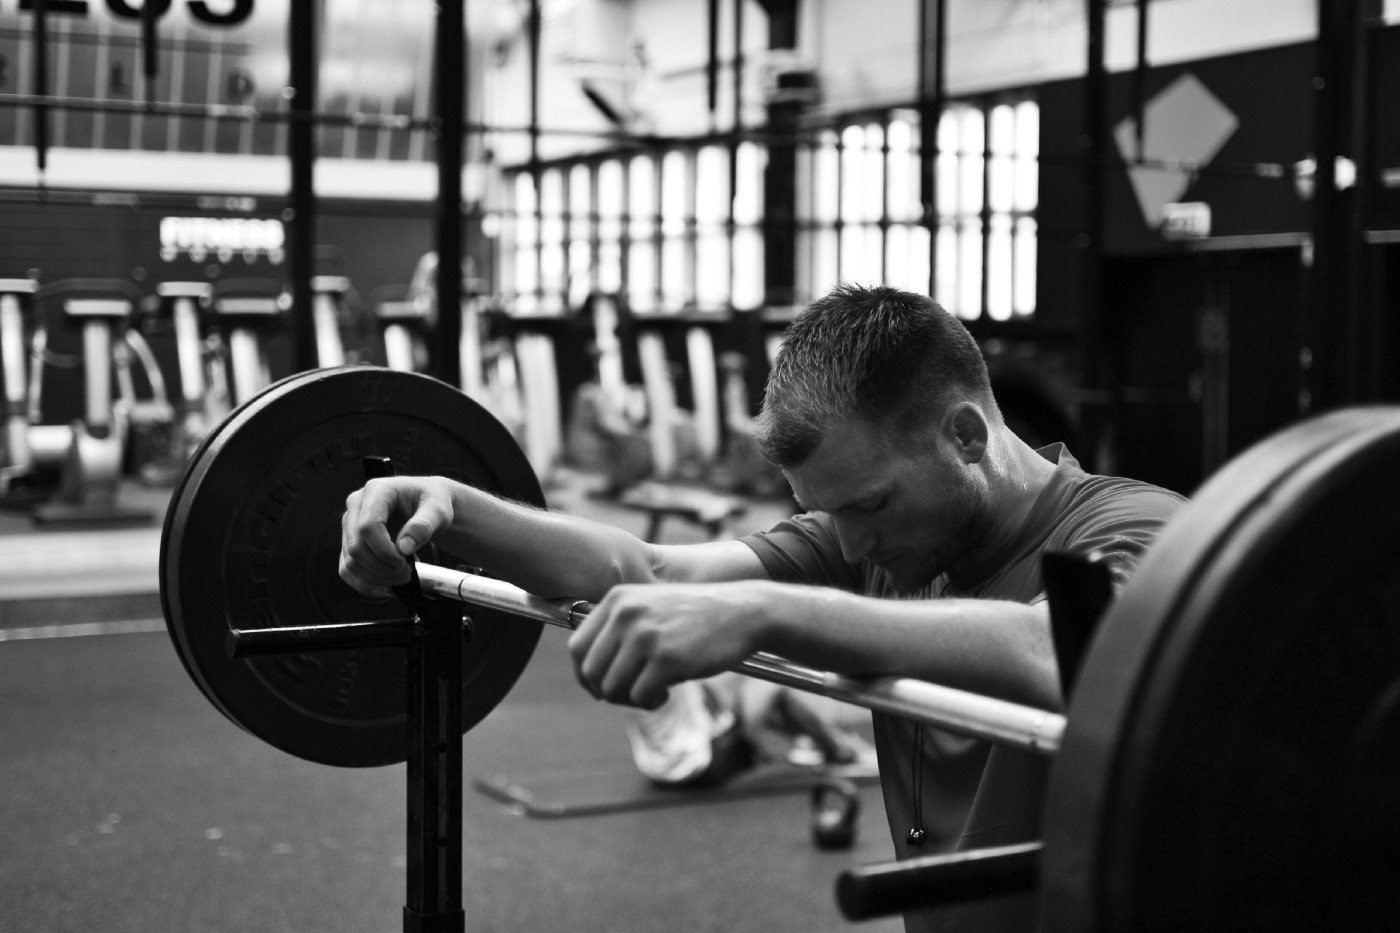 A lifter in leaning on a barbell, looking focused, in black and white.